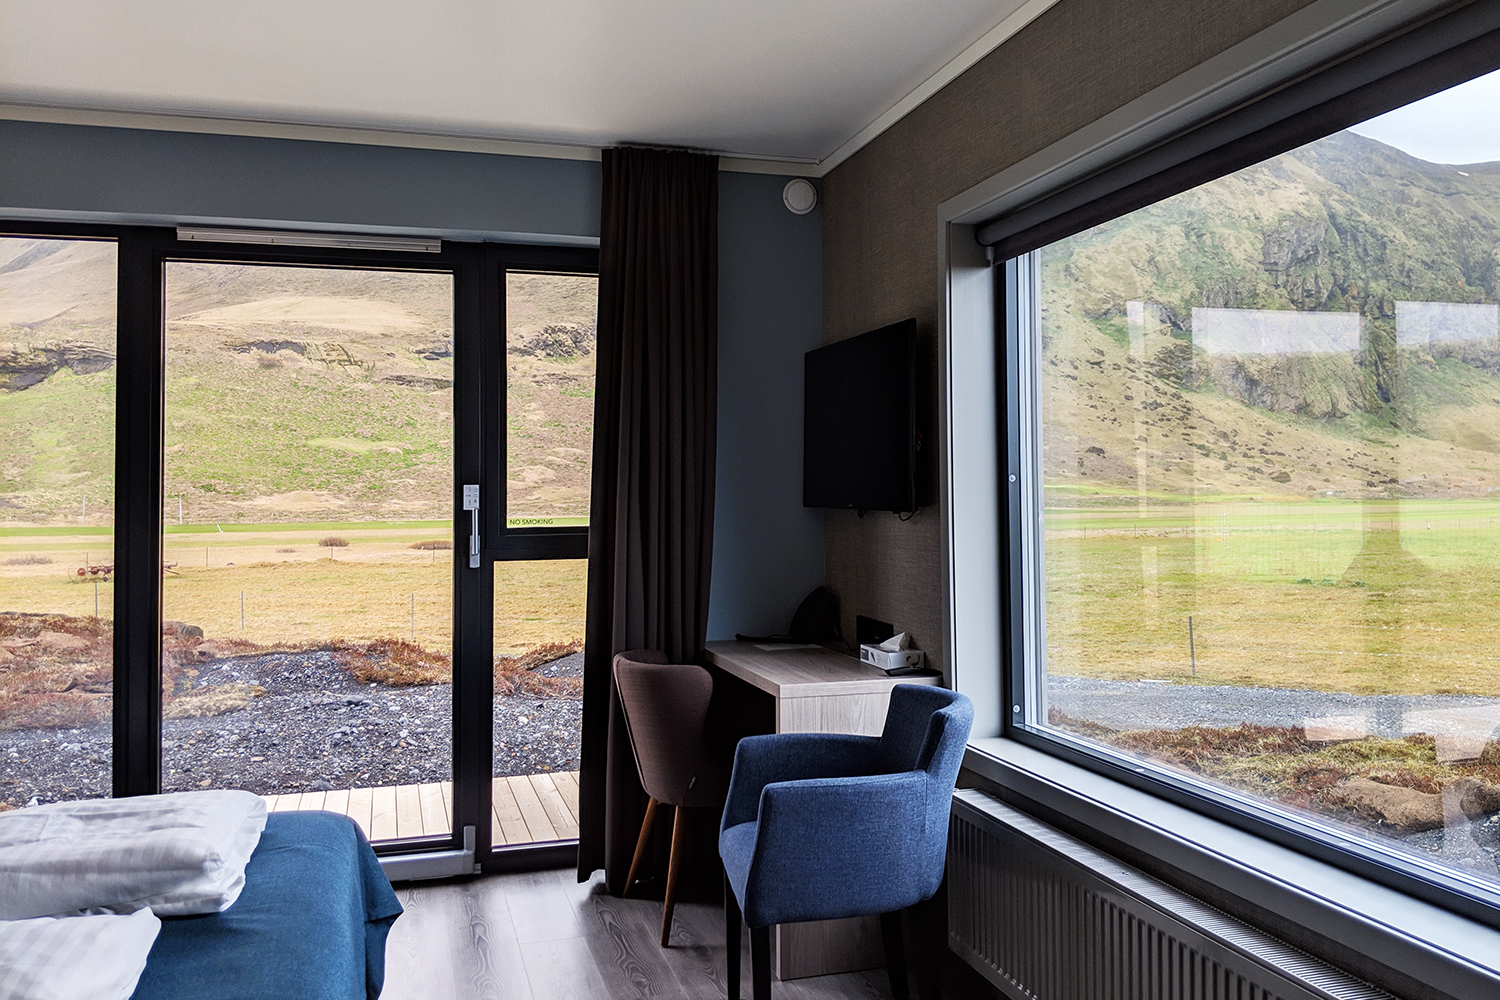 02iceland-vik-hotelkria-travel-roomwithaview